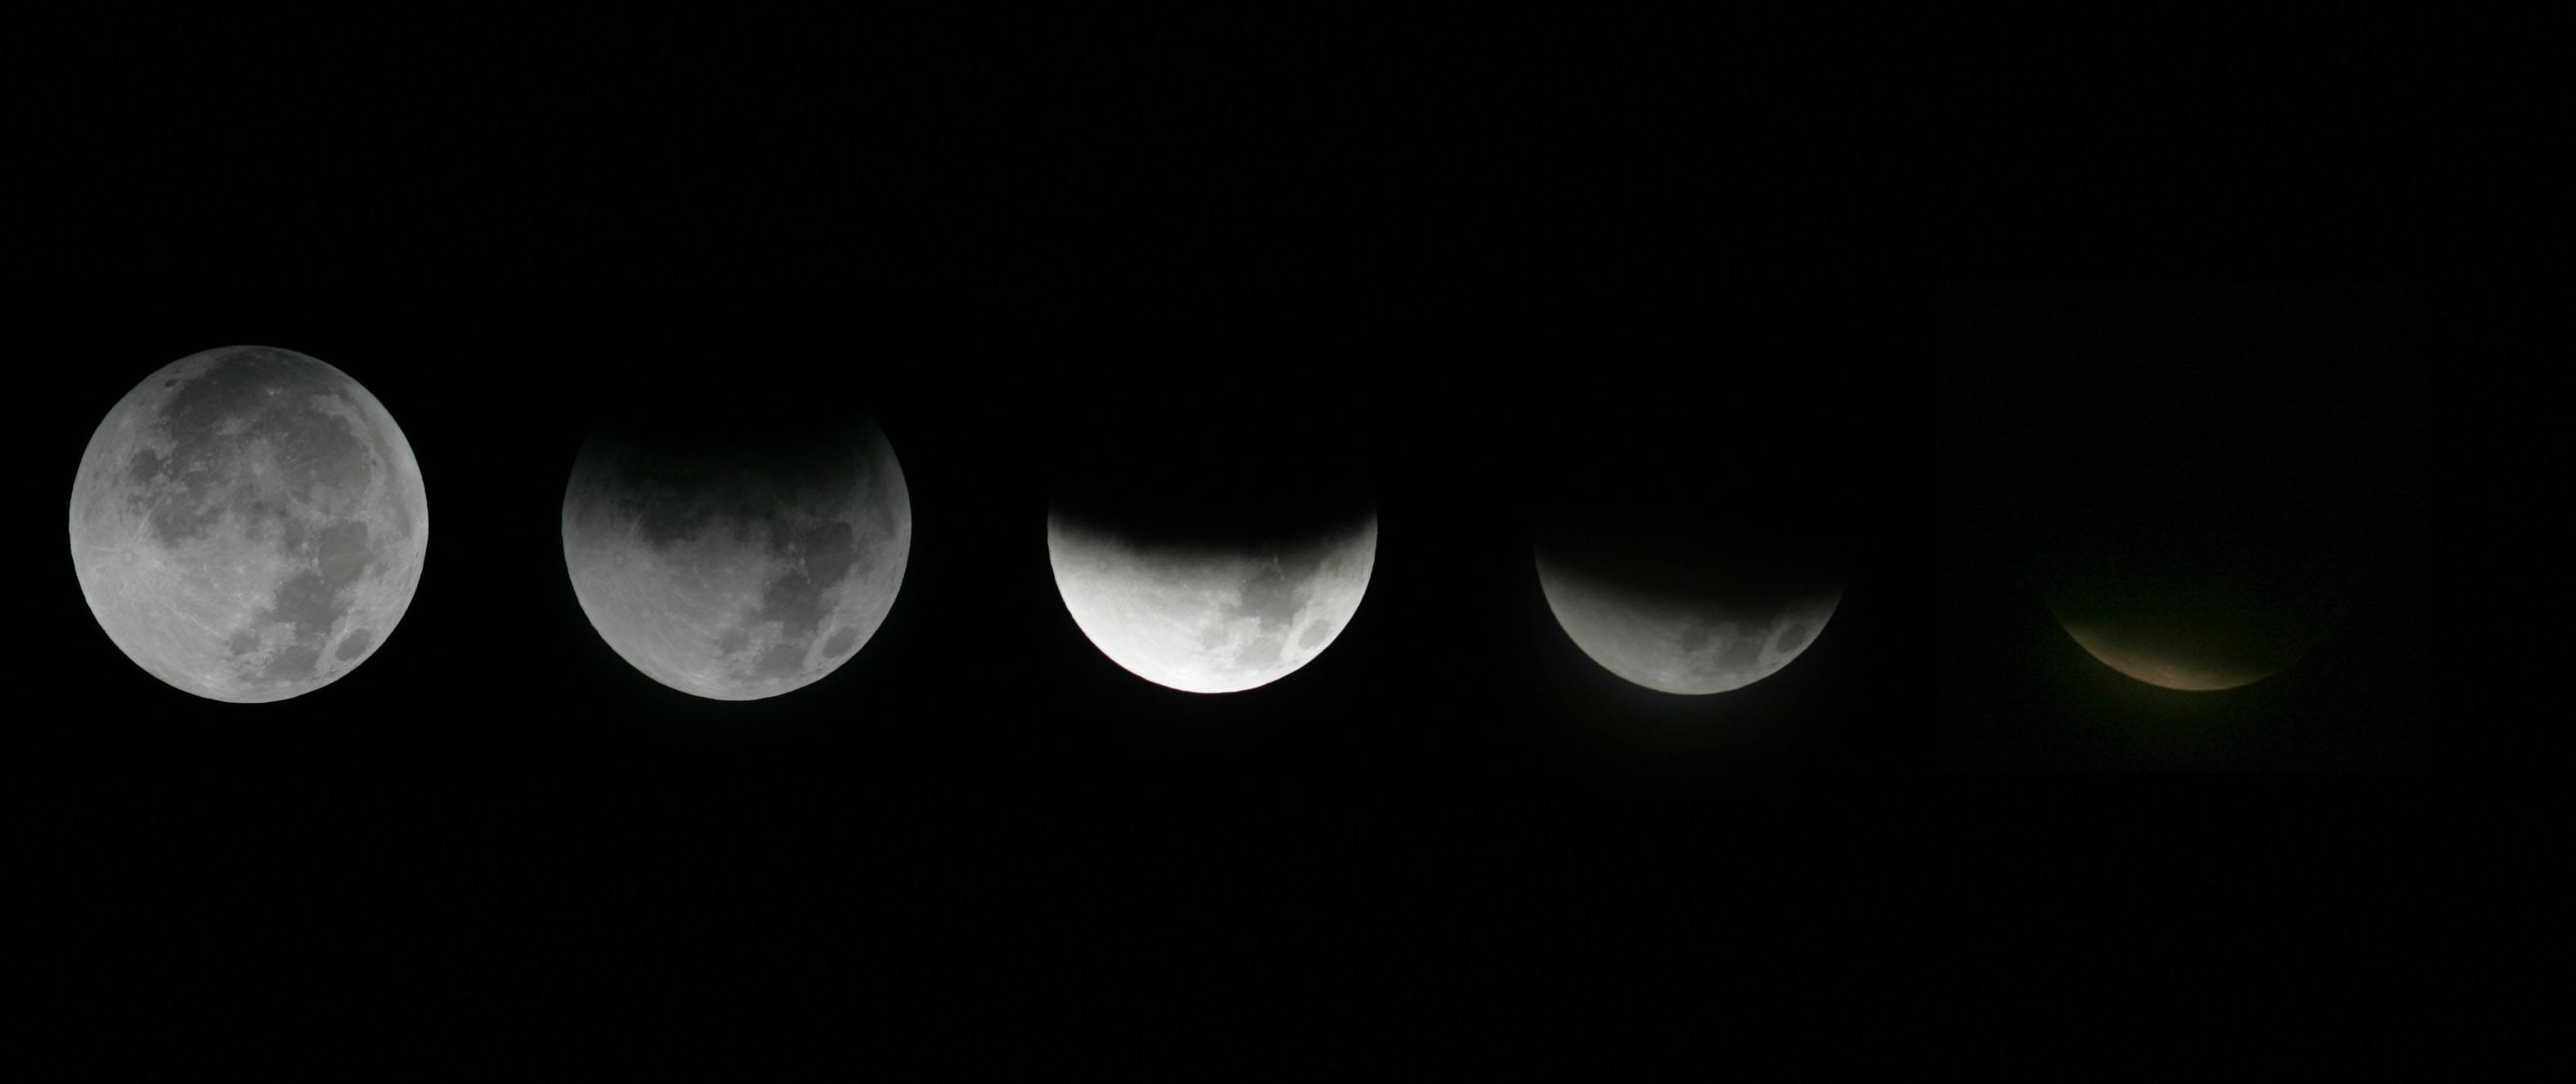 This combination of Saturday, Dec. 10, 2011, photos shows the different stages of the moon during a lunar eclipse as seen from the Griffith Observatory in Los Angeles. On Tuesday morning, April 15, the moon will be eclipsed by Earth's shadow and will be visible across the Western Hemisphere. The total phase will last 78 minutes.